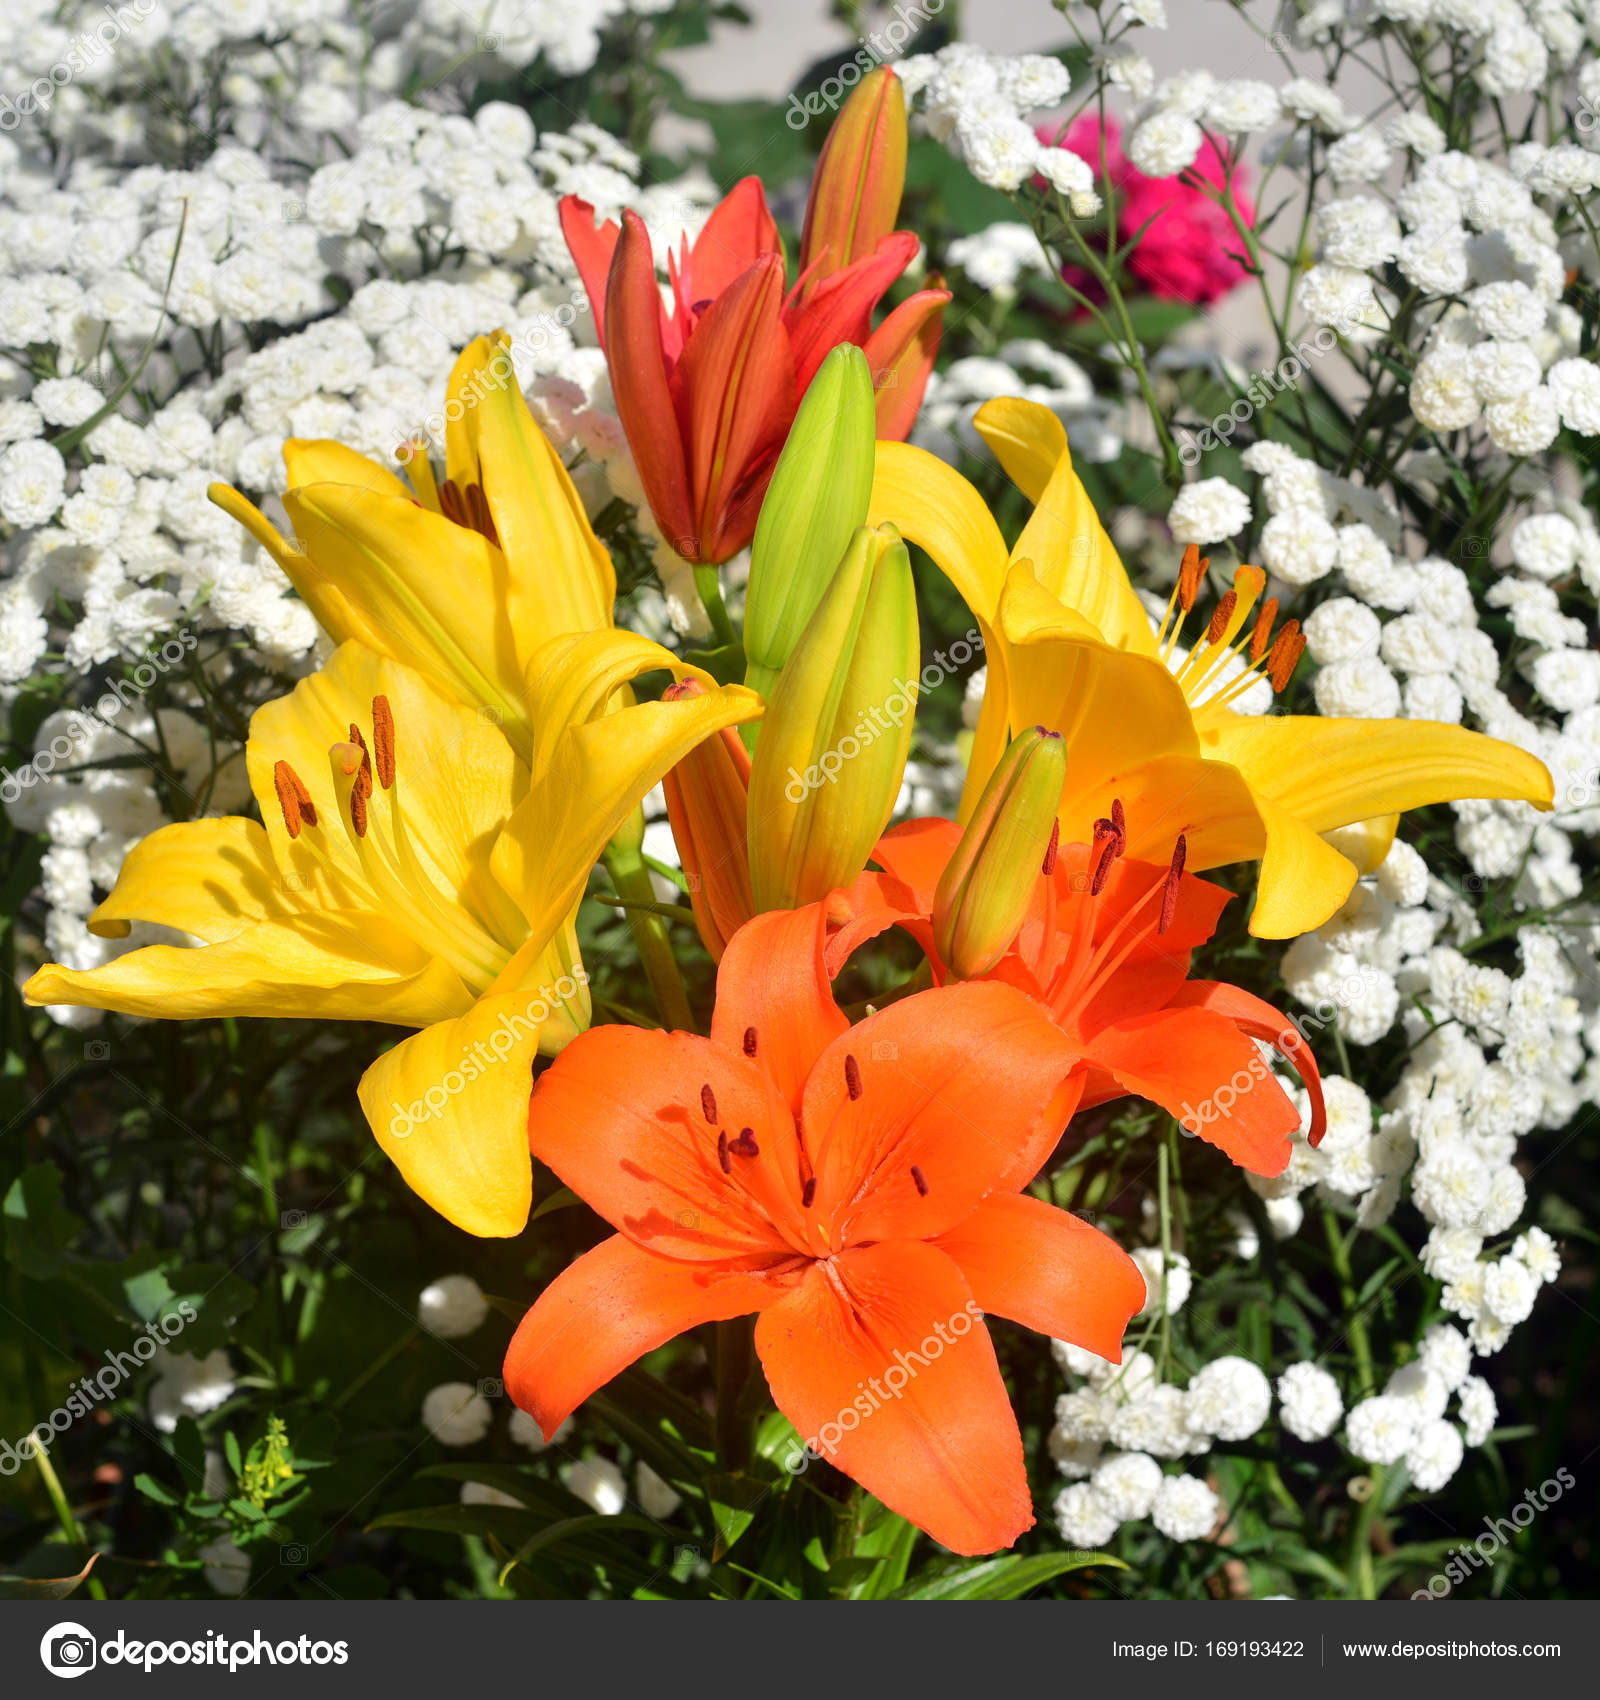 A Beautiful Flowerbed With Yellow And Orange Lily Flowers Agains